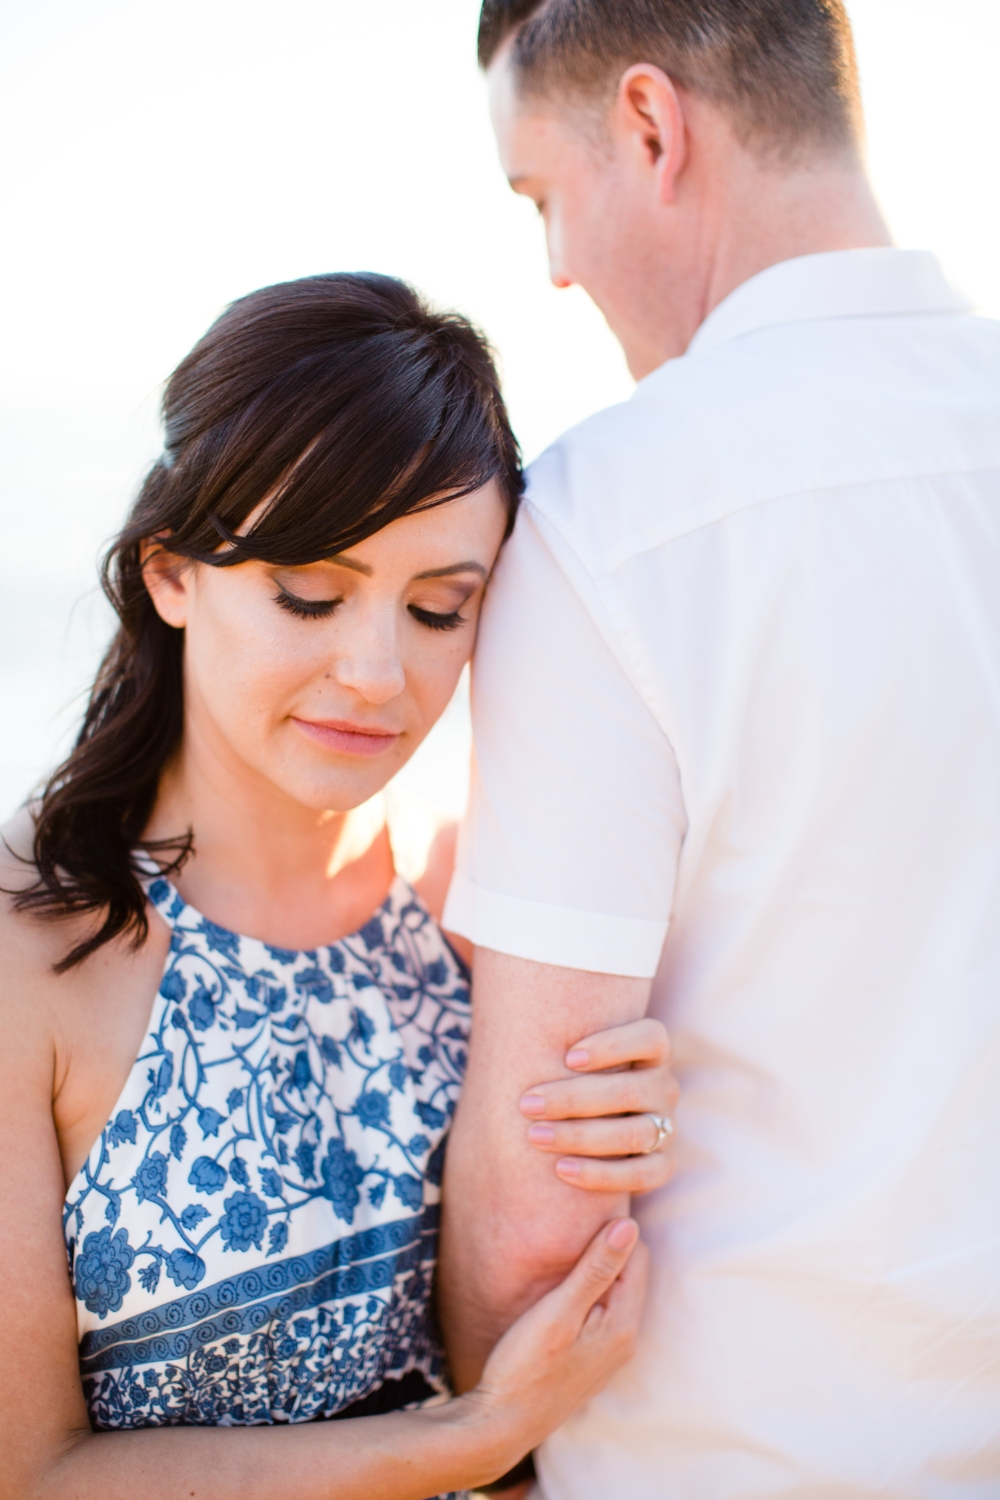 Romantic Engagement Photography with Simple Ring and Eyelash Extensions. Hair and Makeup by Vanity Belle in Orange County (Costa Mesa) and San Diego (La Jolla).